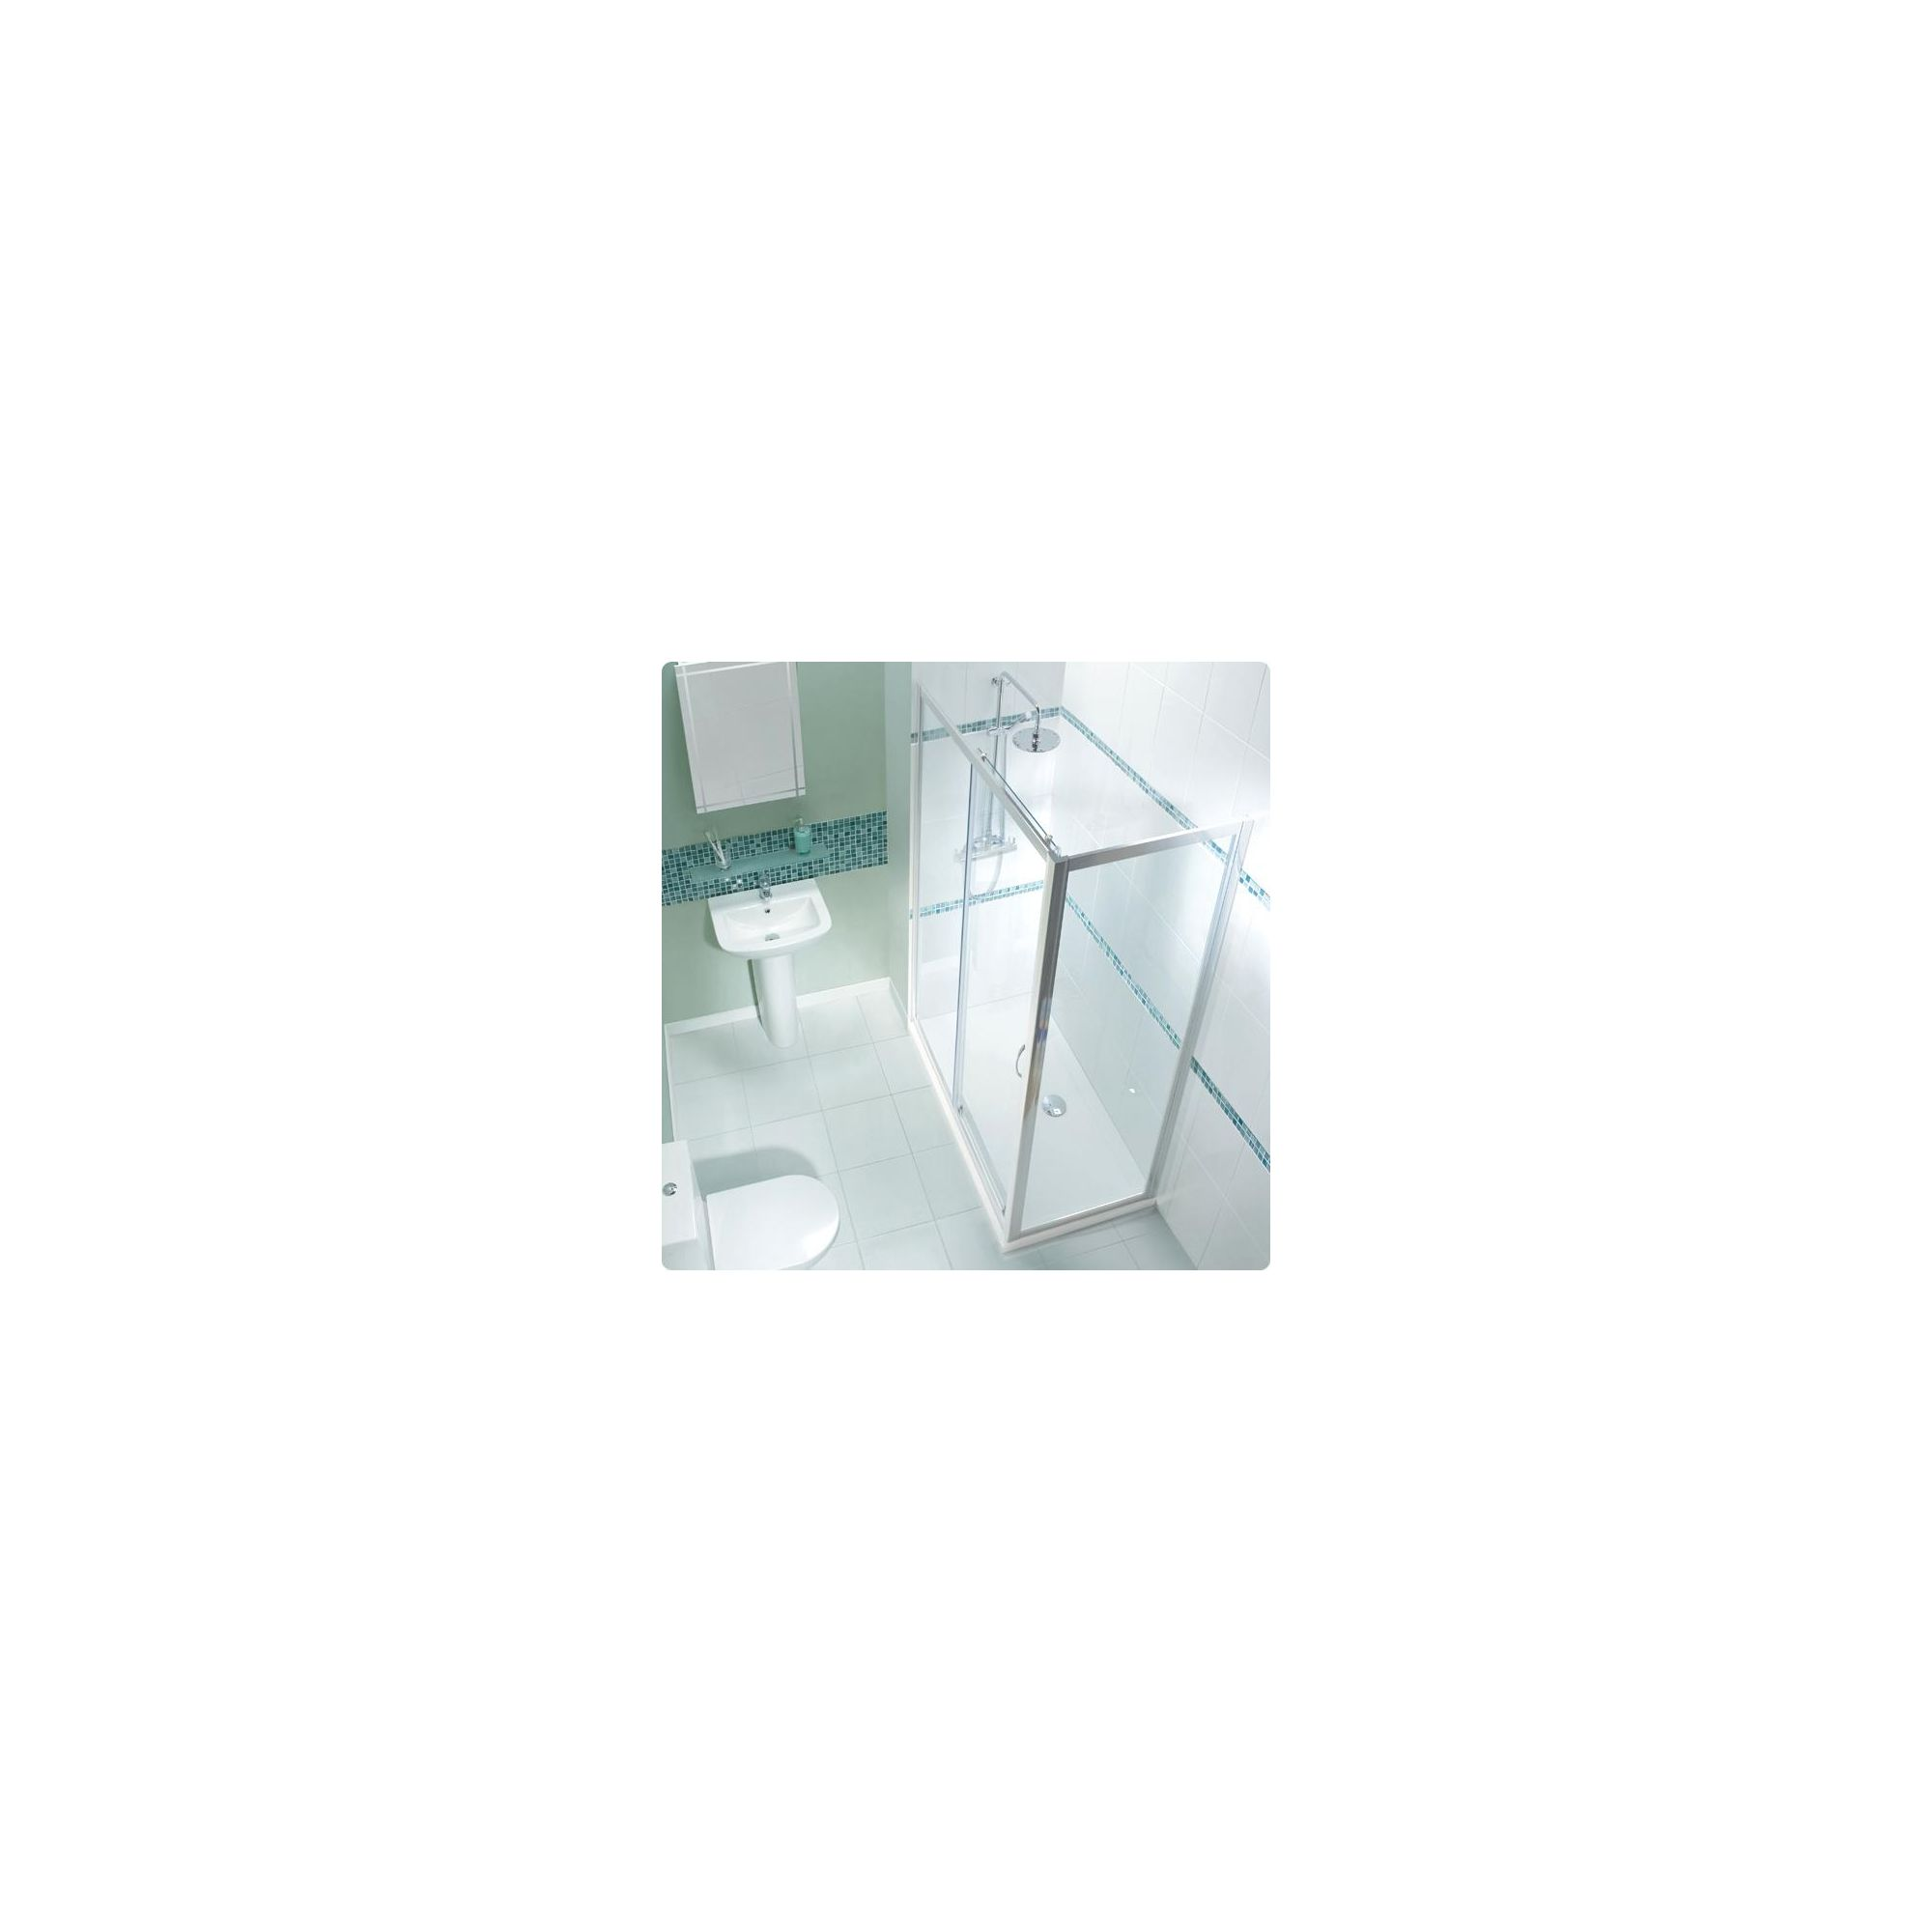 Balterley Framed Sliding Shower Enclosure, 1000mm x 760mm, Standard Tray, 6mm Glass at Tesco Direct